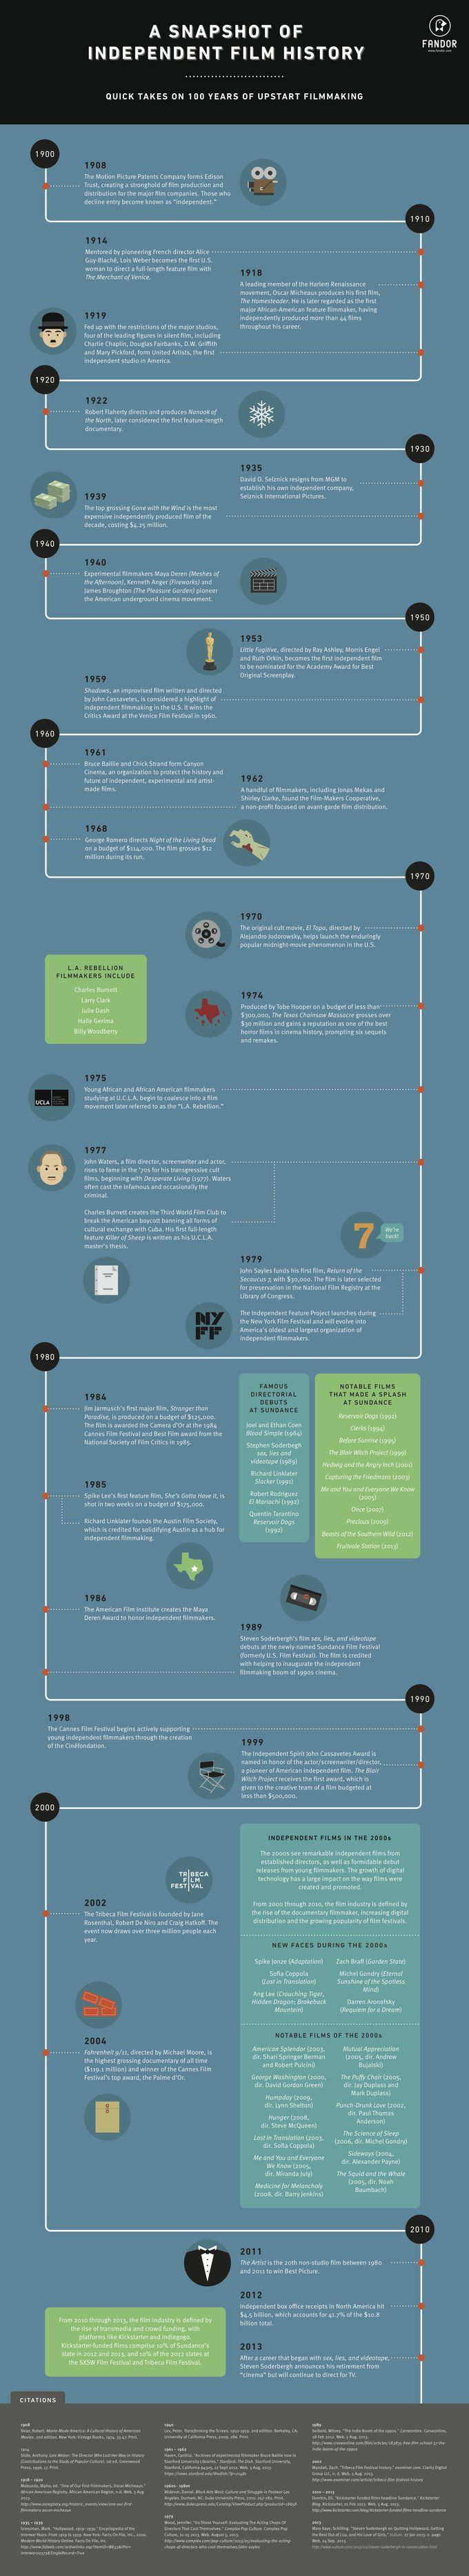 Indie Film History in #Infographic Form: Plus Marlon Brando and More From Fandor | Filmmakers, Film Industry, Film Festivals, Awards & Movie Reviews | Indiewire